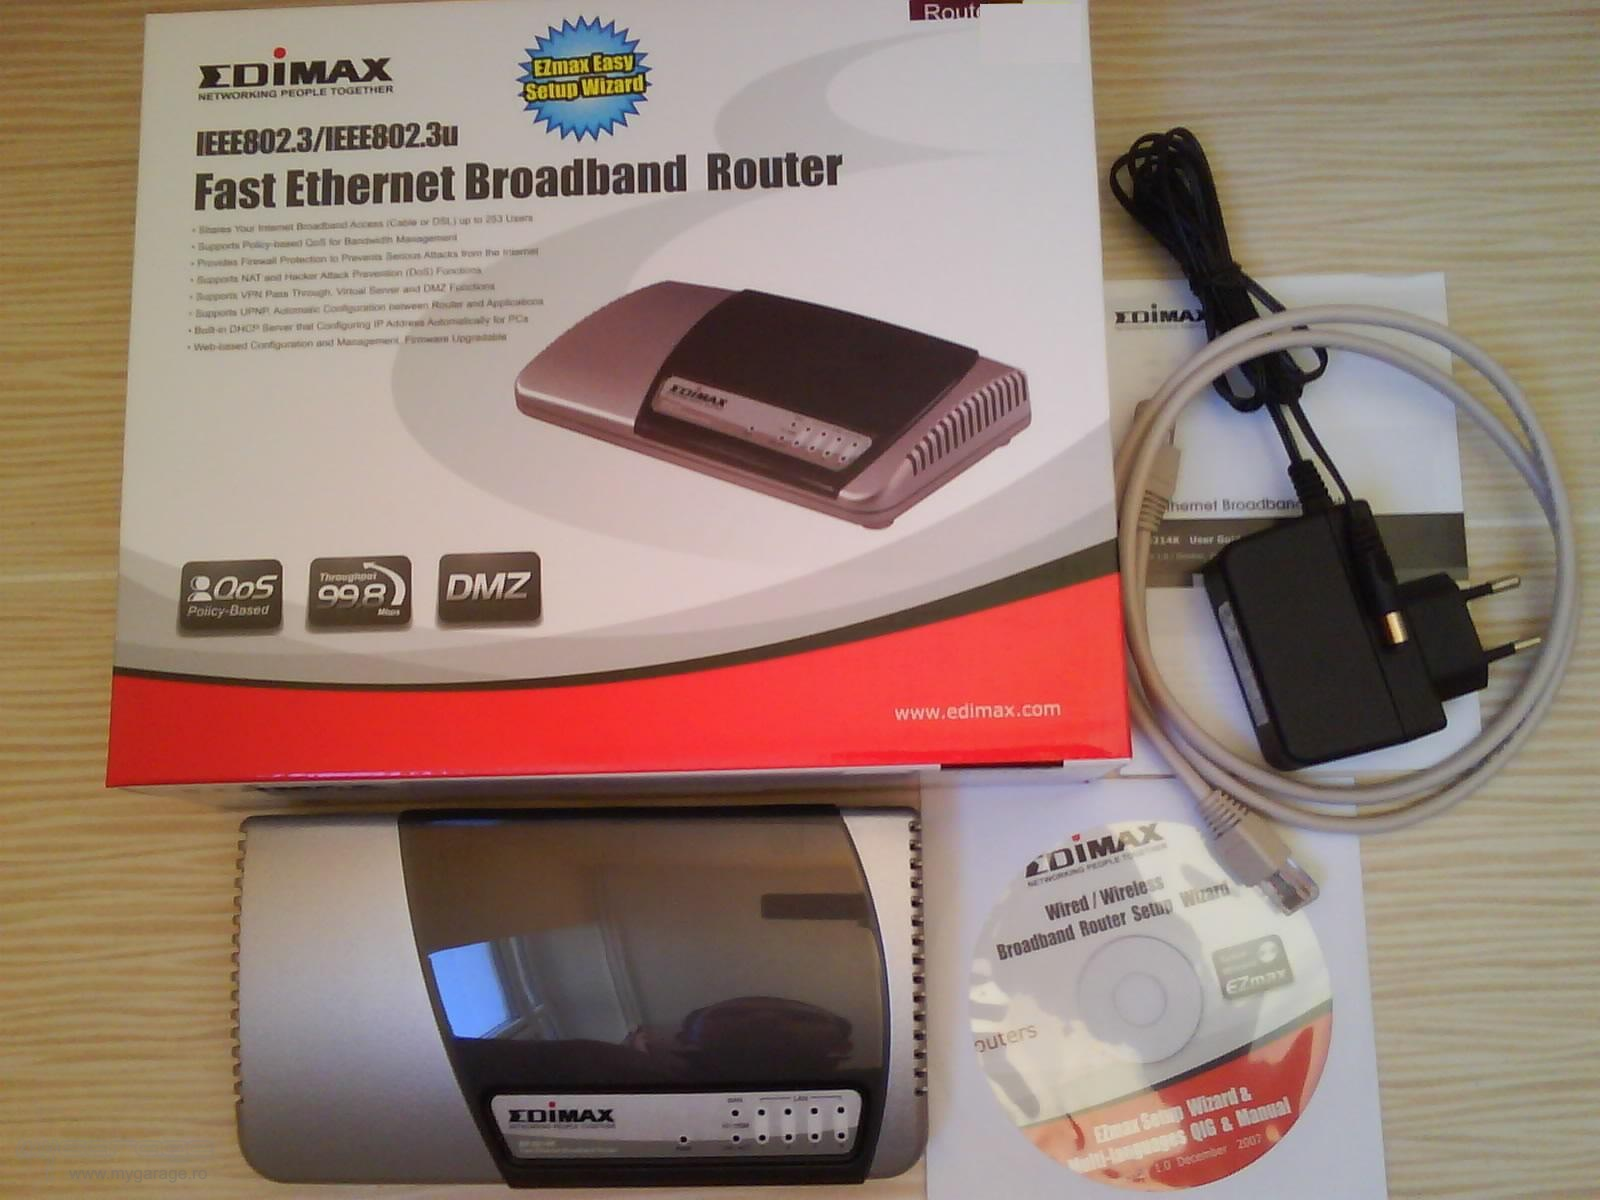 Driver for Edimax BR-6214K Router